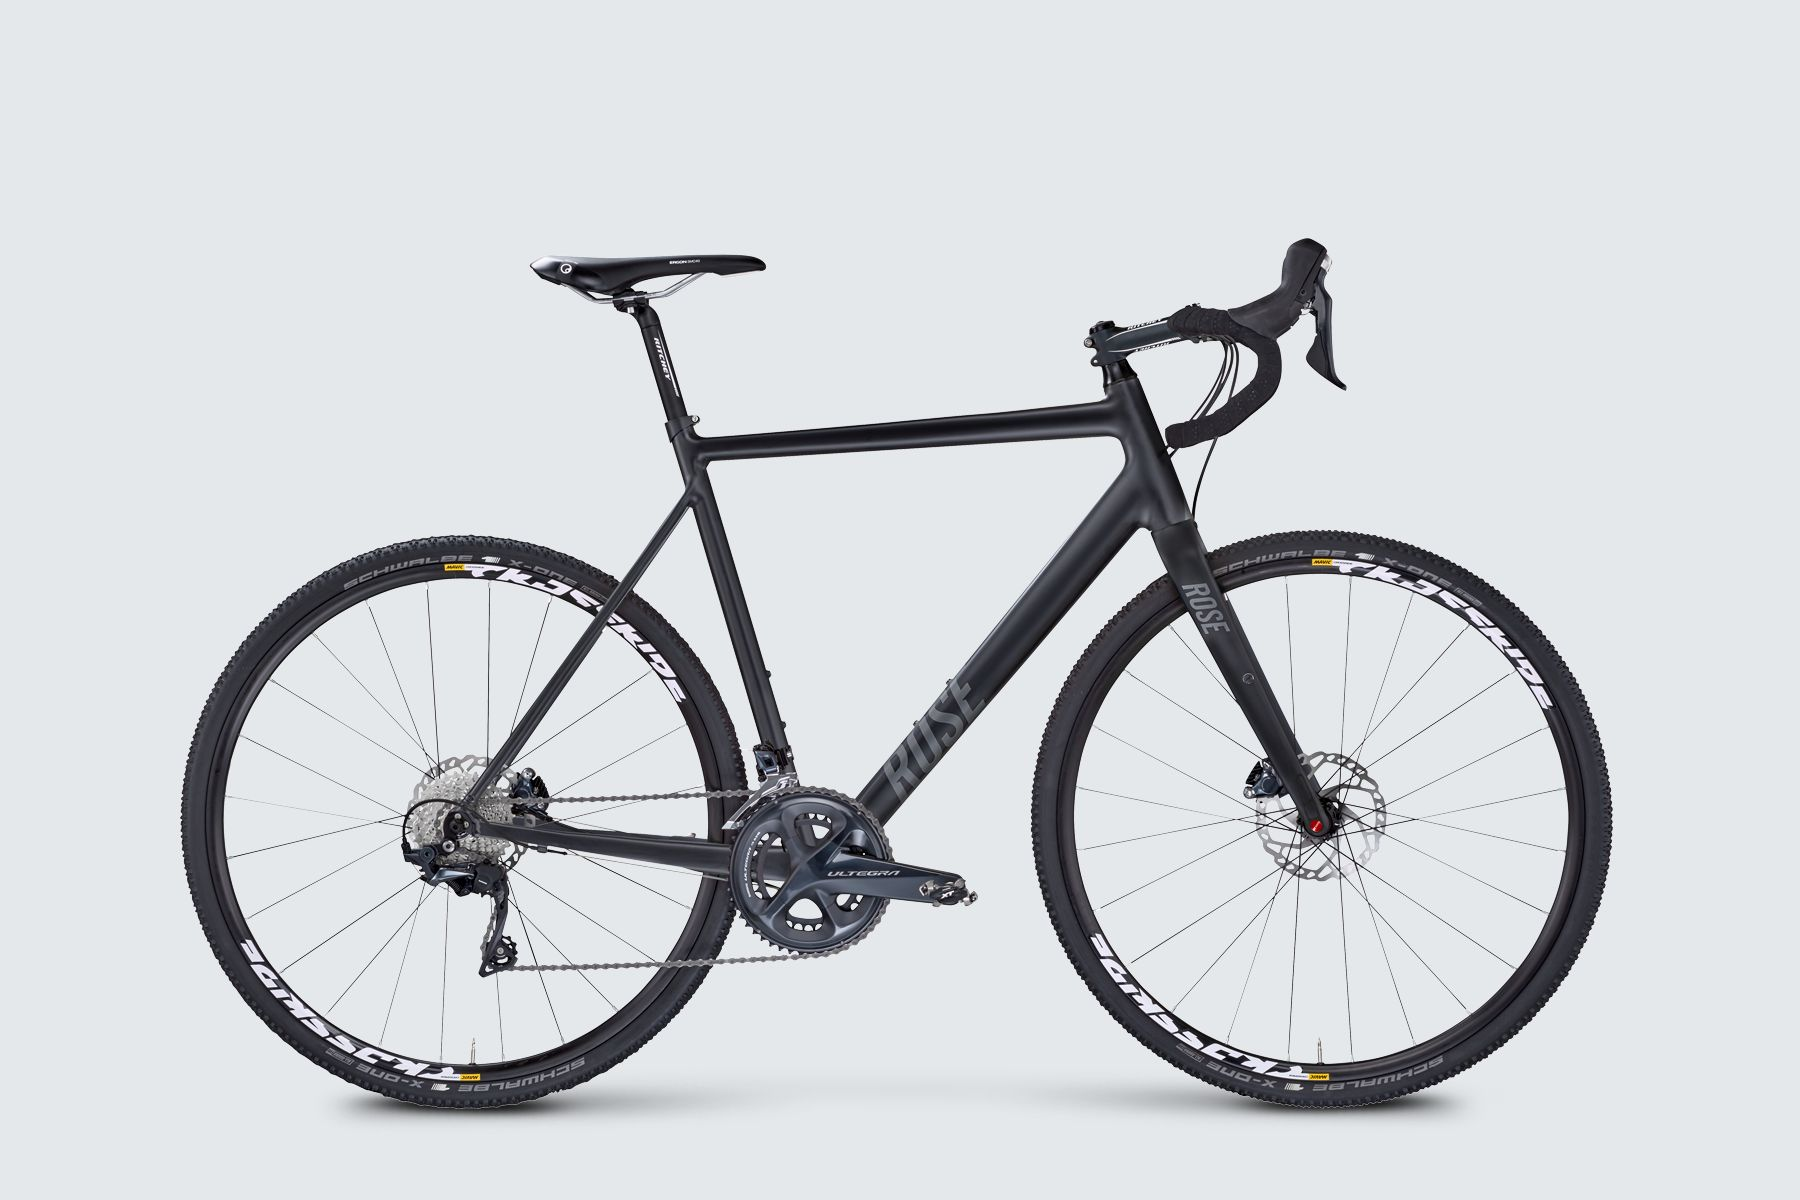 The ROSE PRO CROSS Ultegra | Your dream bike – exclusively available at ROSE Bikes | Cross-cykler